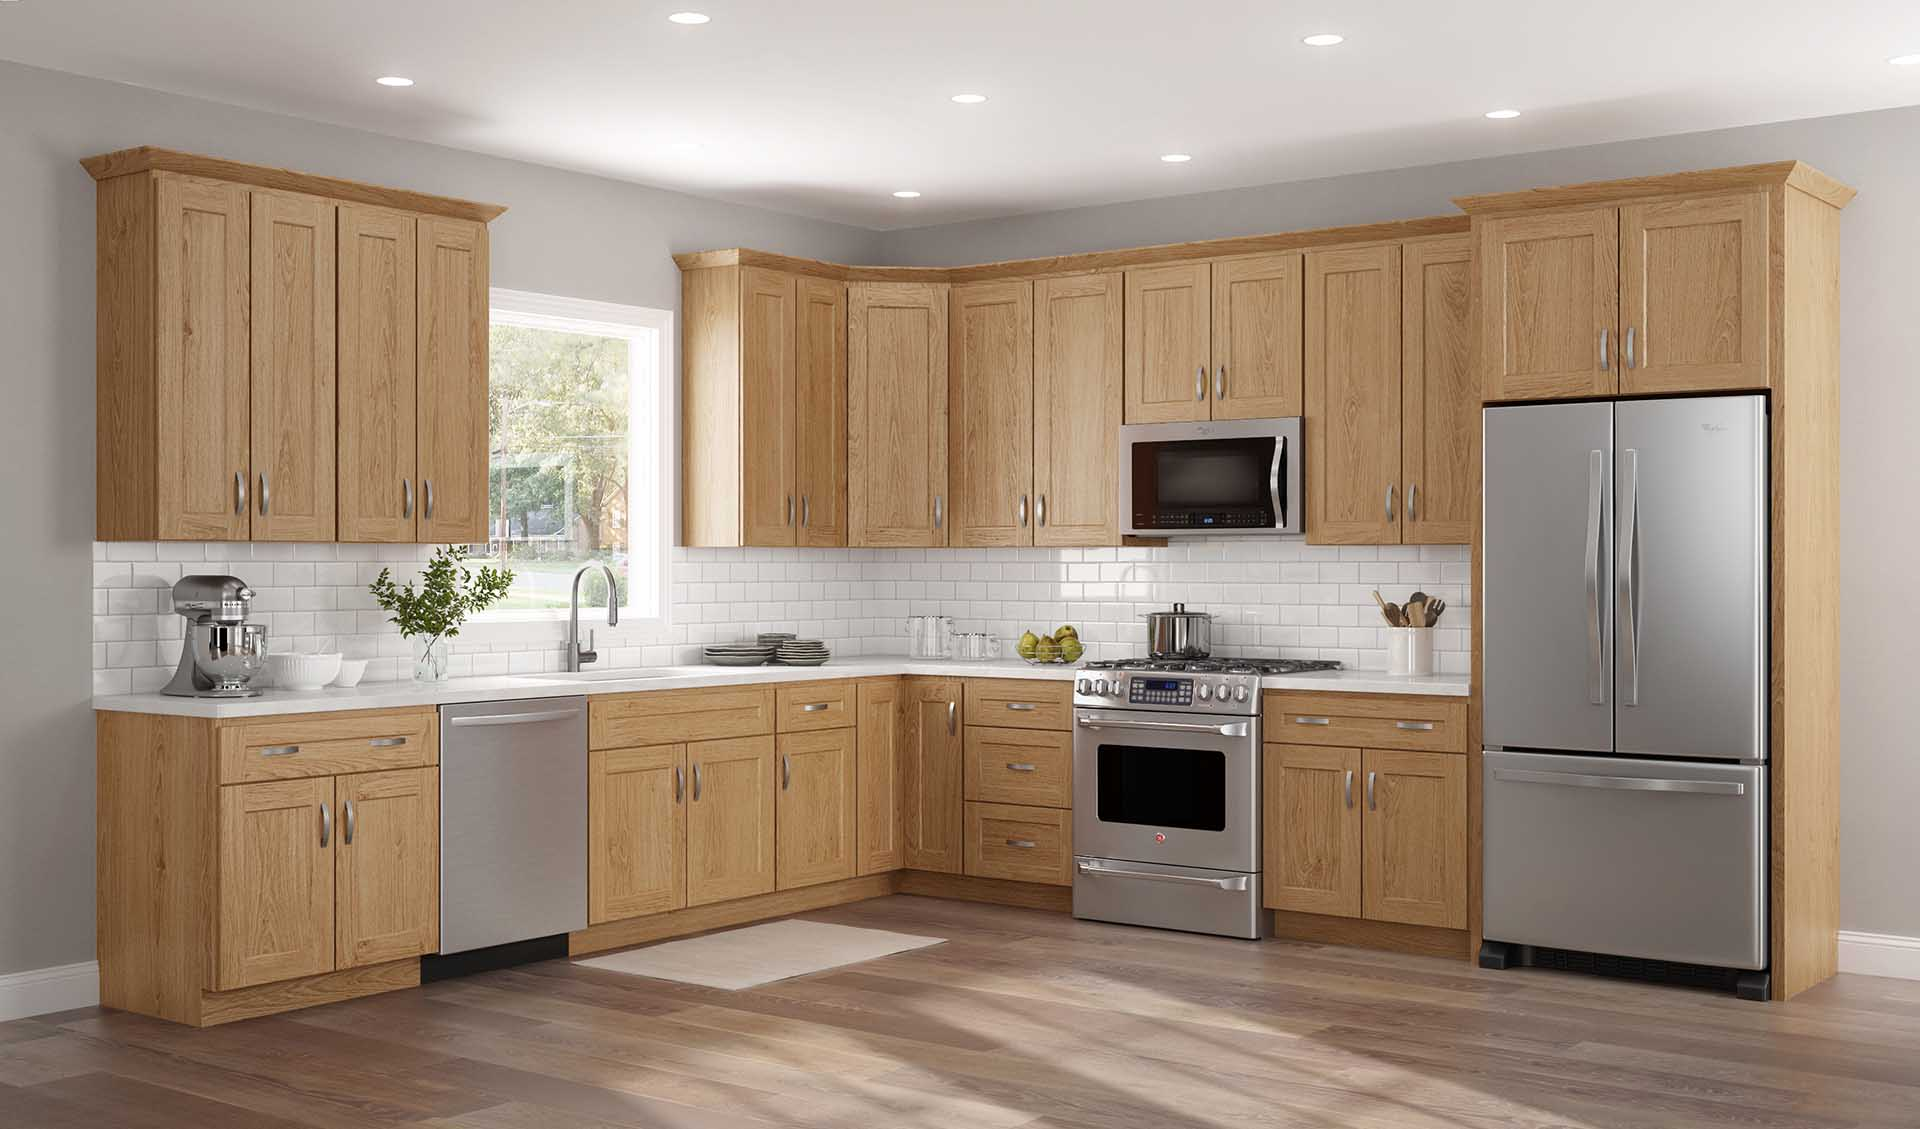 Where To Purchase Kitchen Islands Alabama